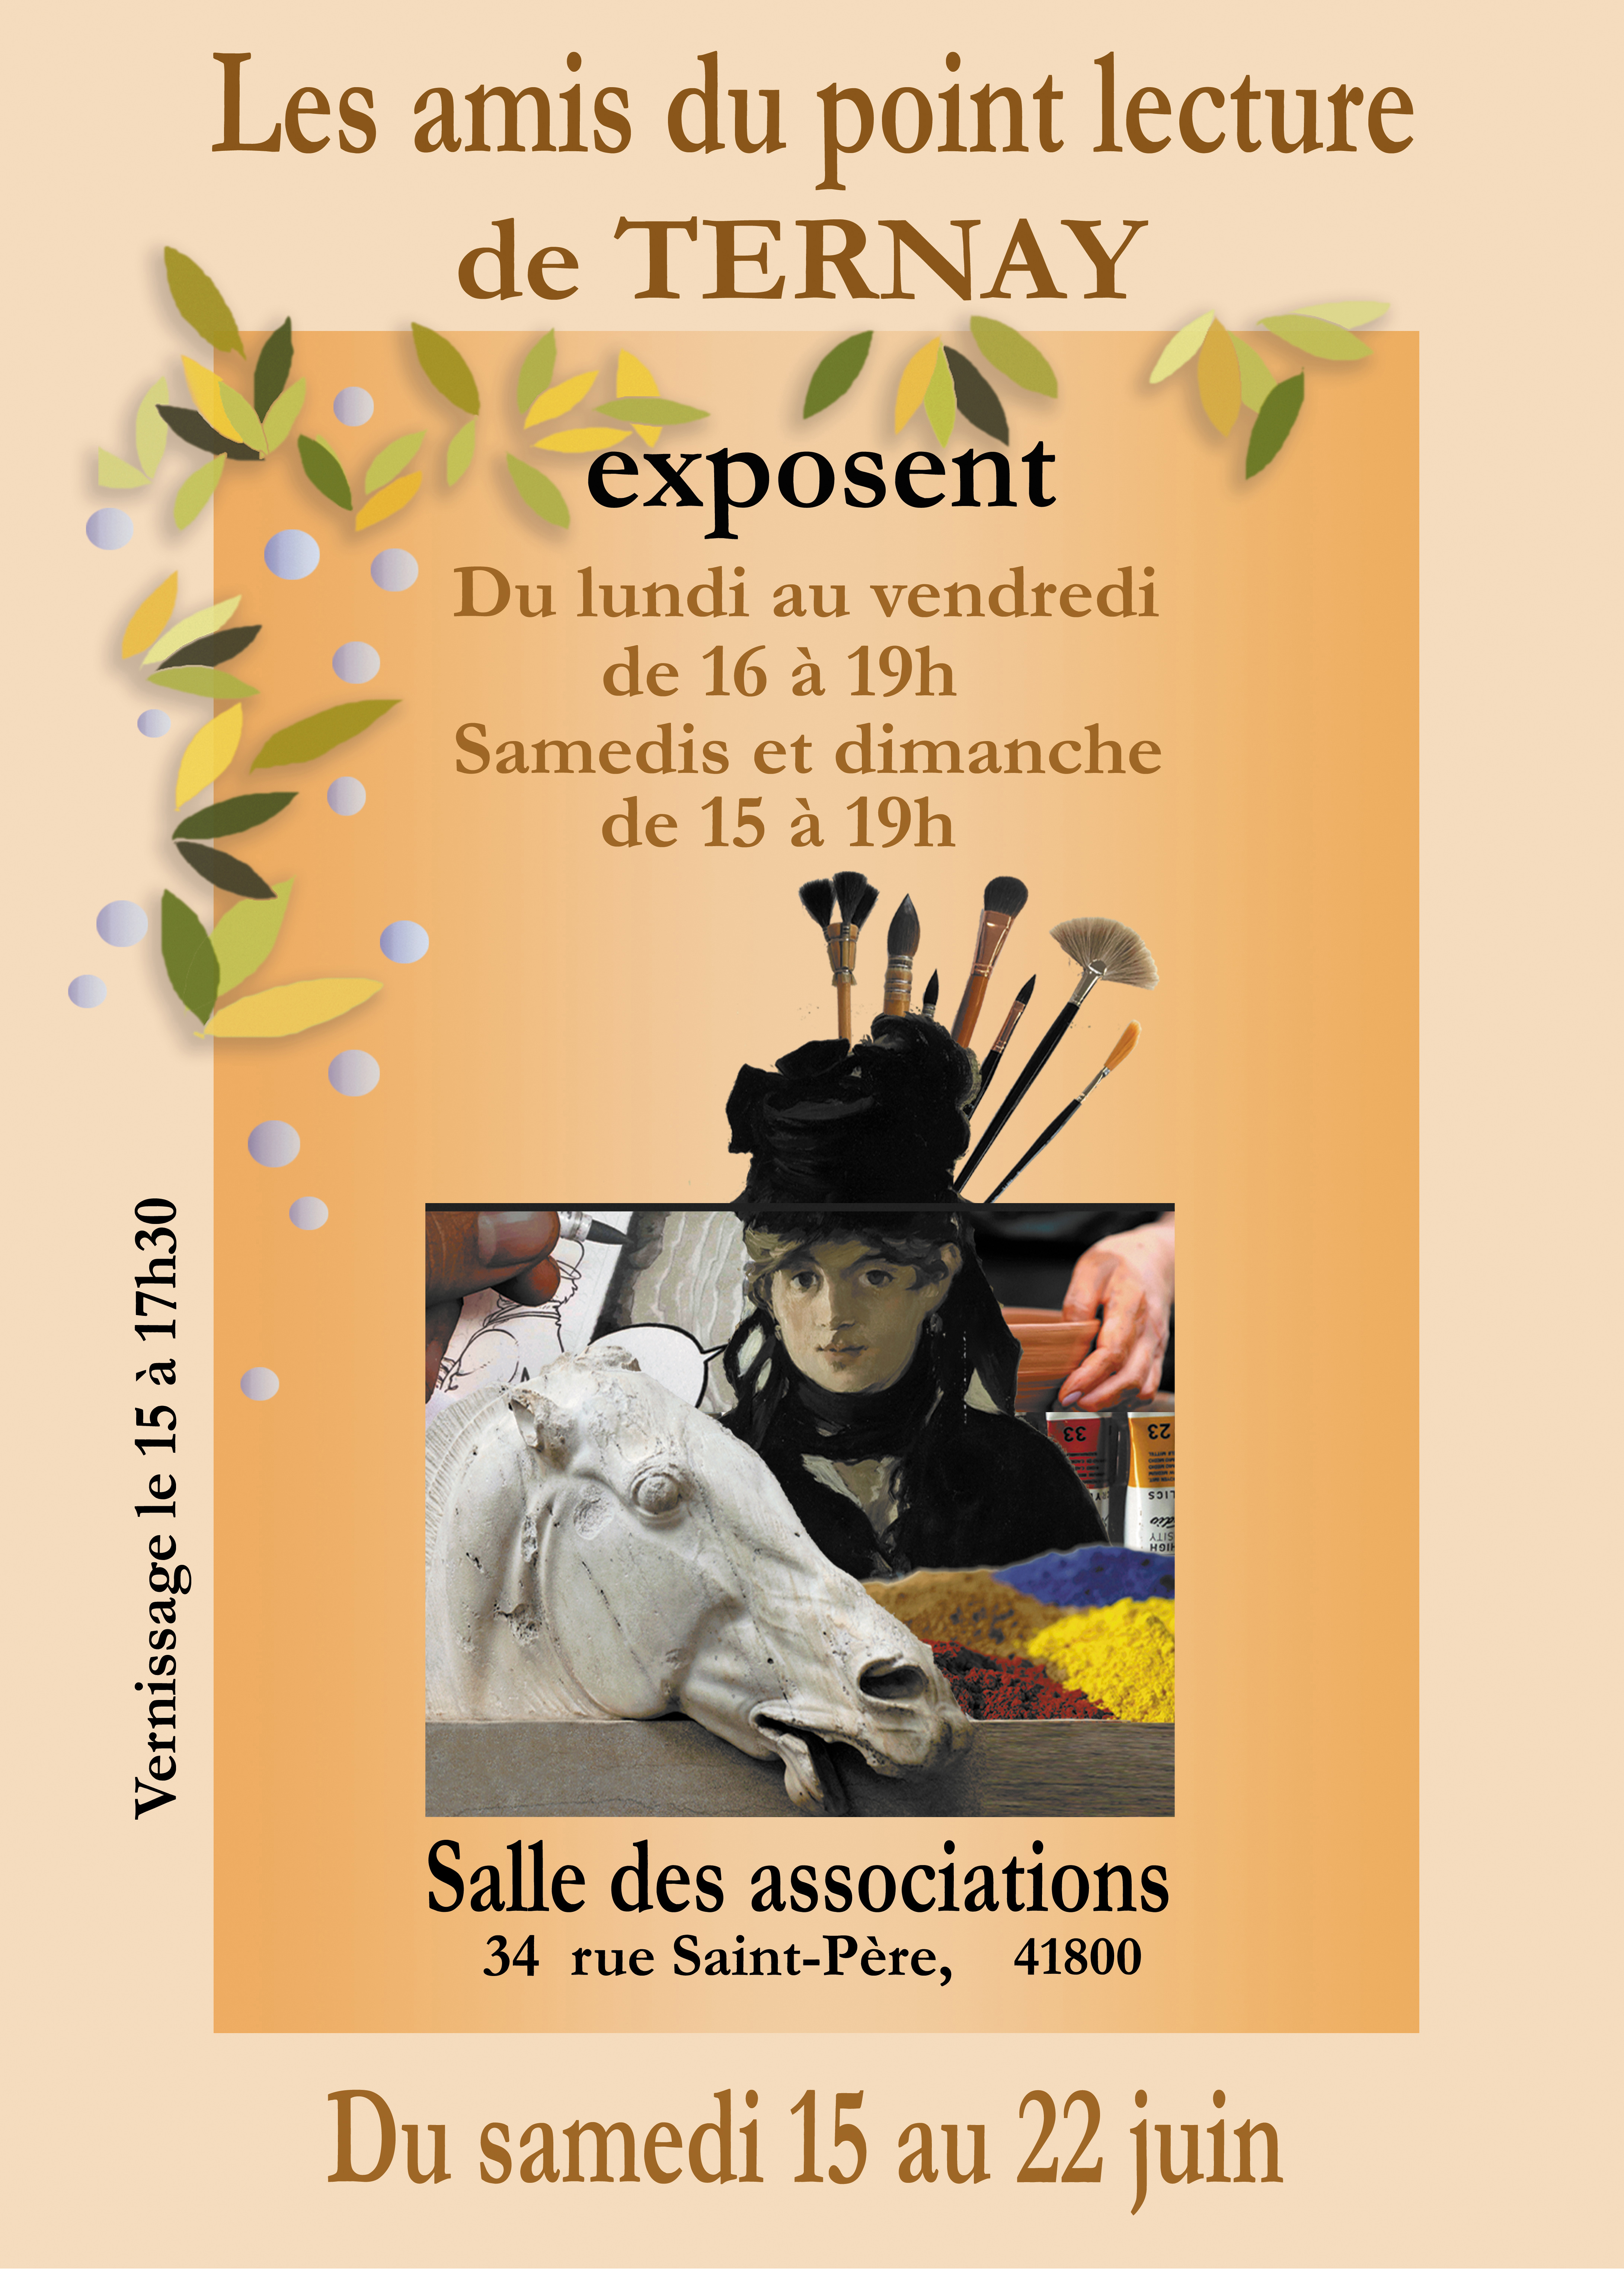 Salons - Expositions